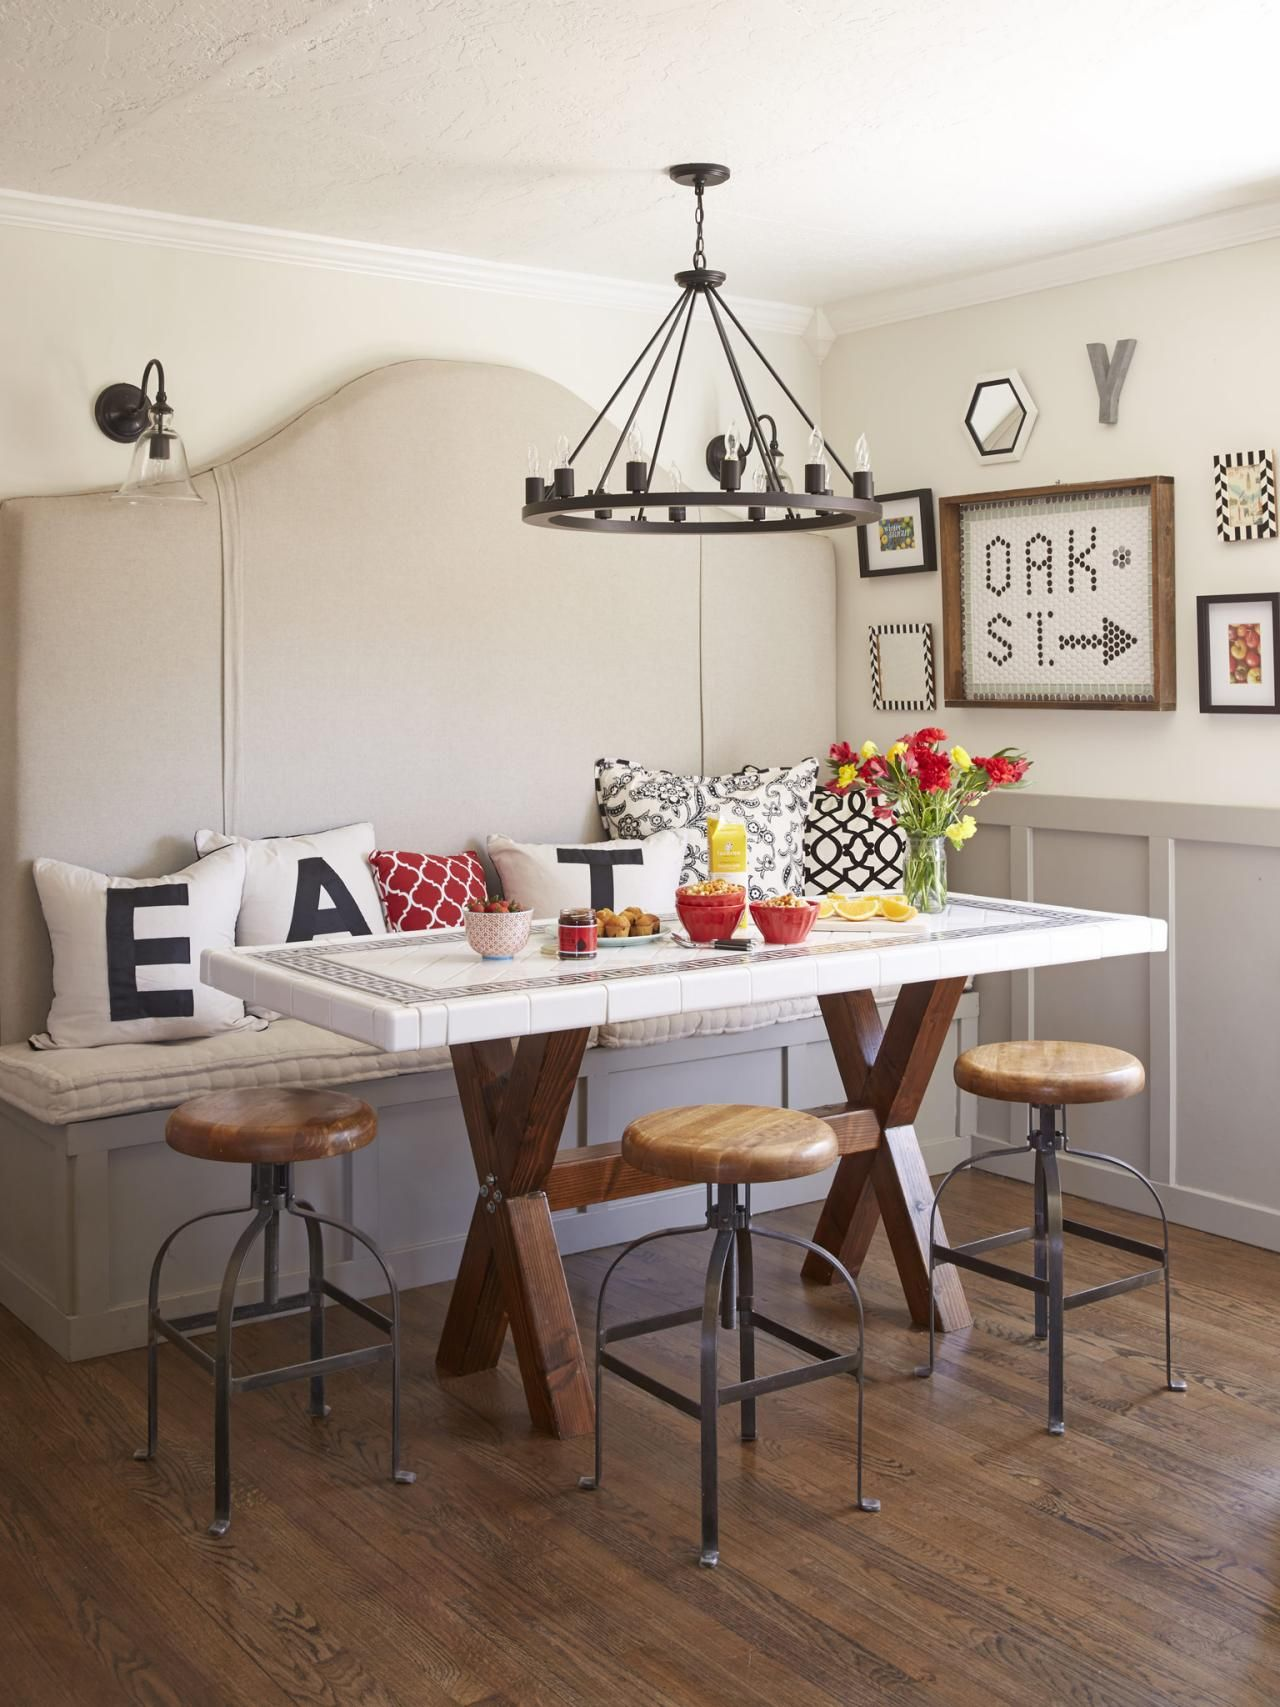 Decorating With a Black, White and Red Color Palette   Interior Design Styles and Color Schemes for Home Decorating   HGTV